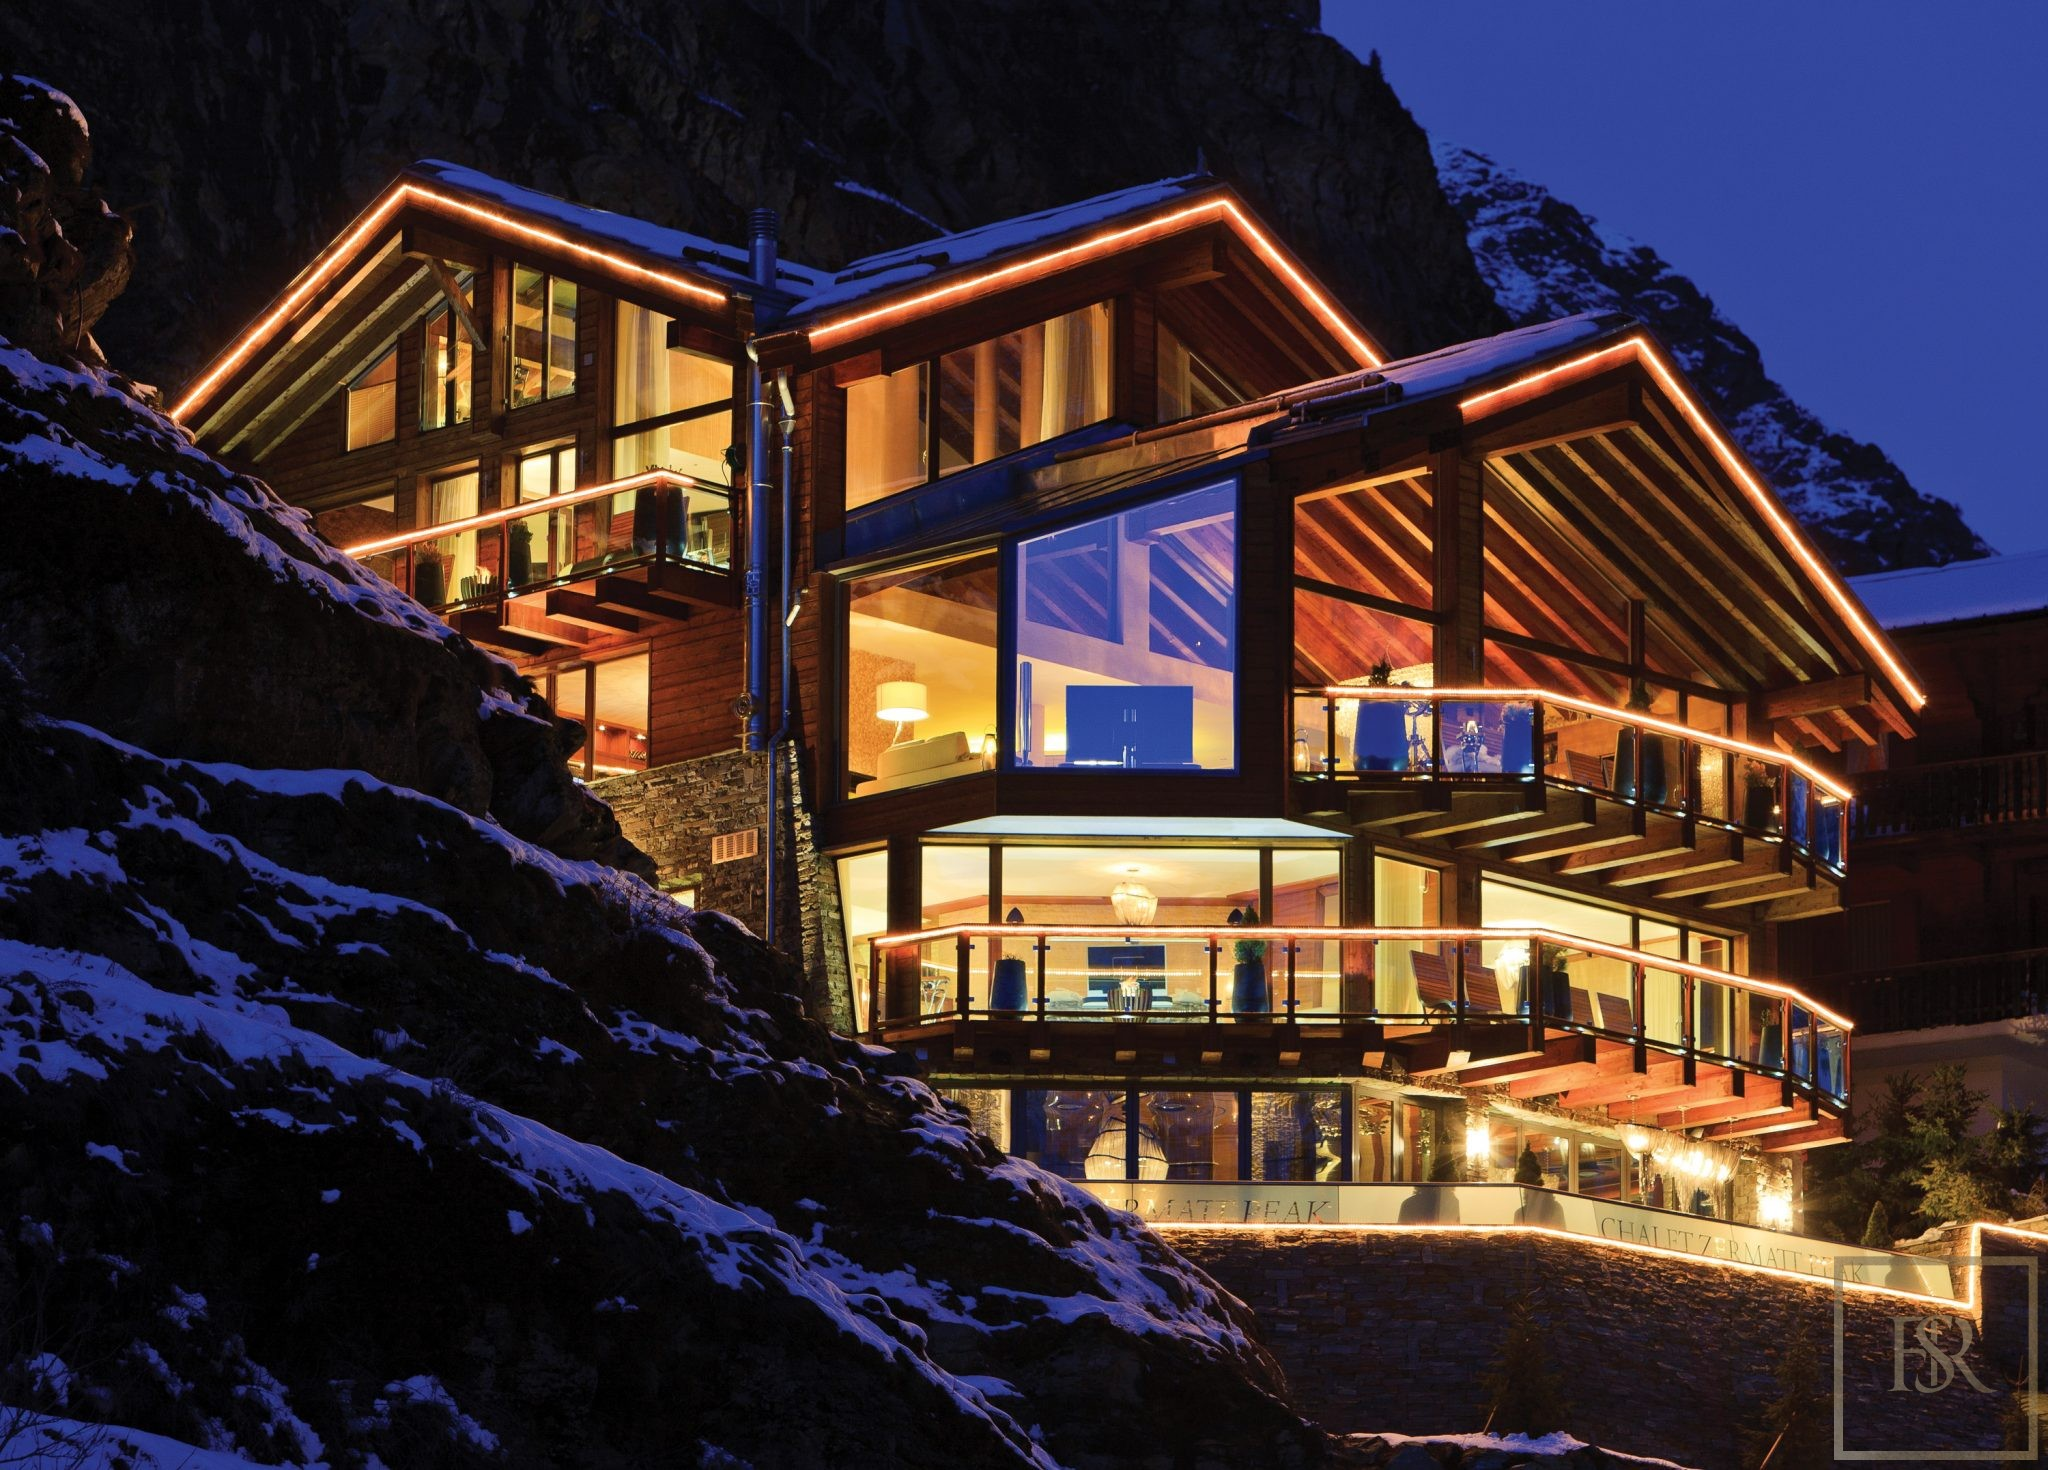 For super rich ultra luxury real estate properties homes, most expensive houses, rent unique penthouse apartment and ultimate villa in Zermatt Switzerland for rent holiday